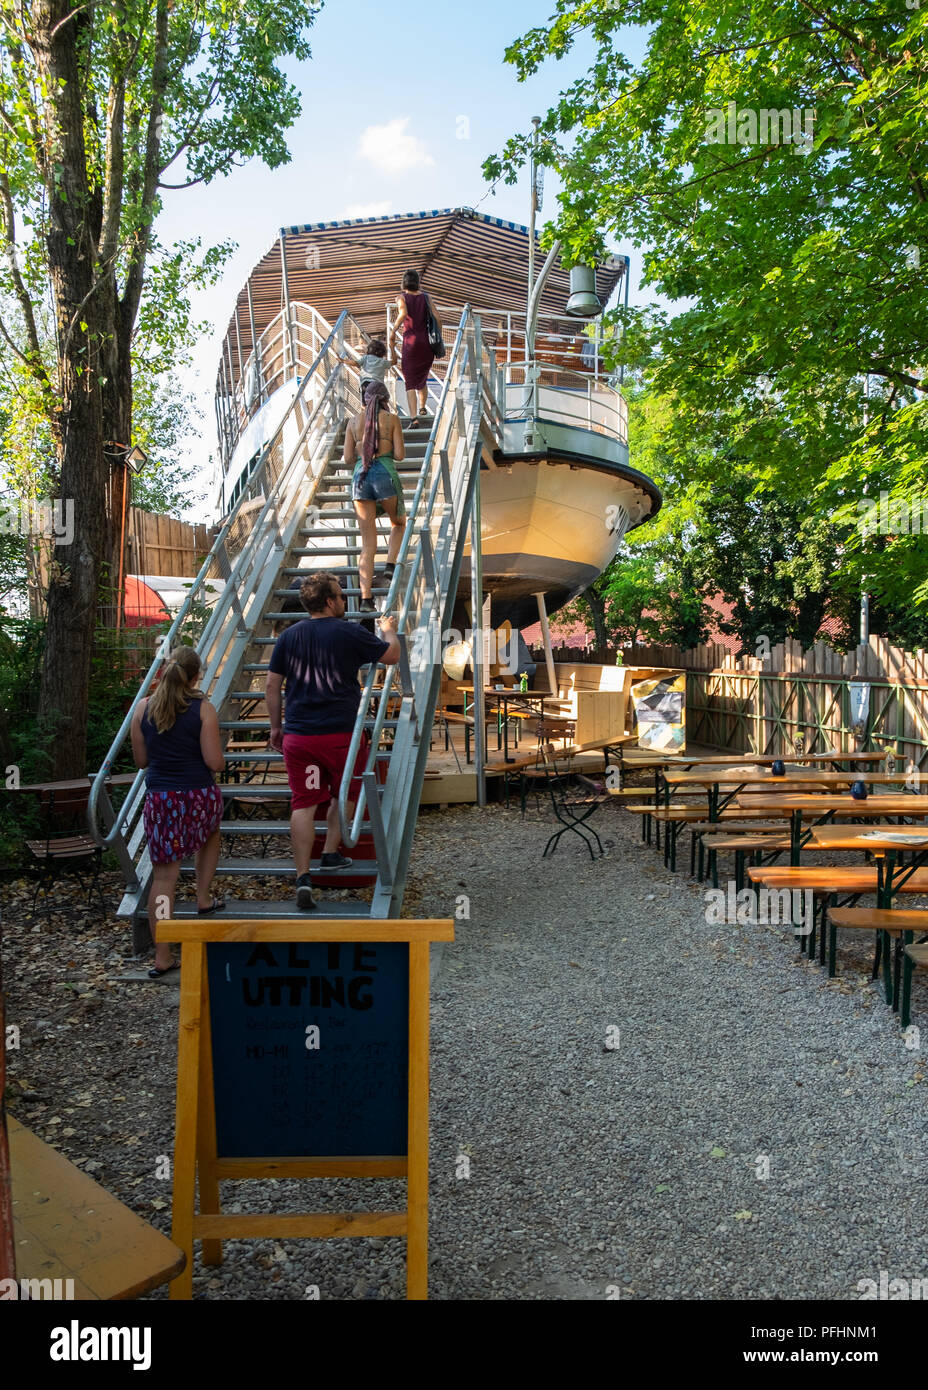 Alte Utting, former  passenger ship converted to a restaurant now placed on a railway bridge in Munich,Germany. - Stock Image